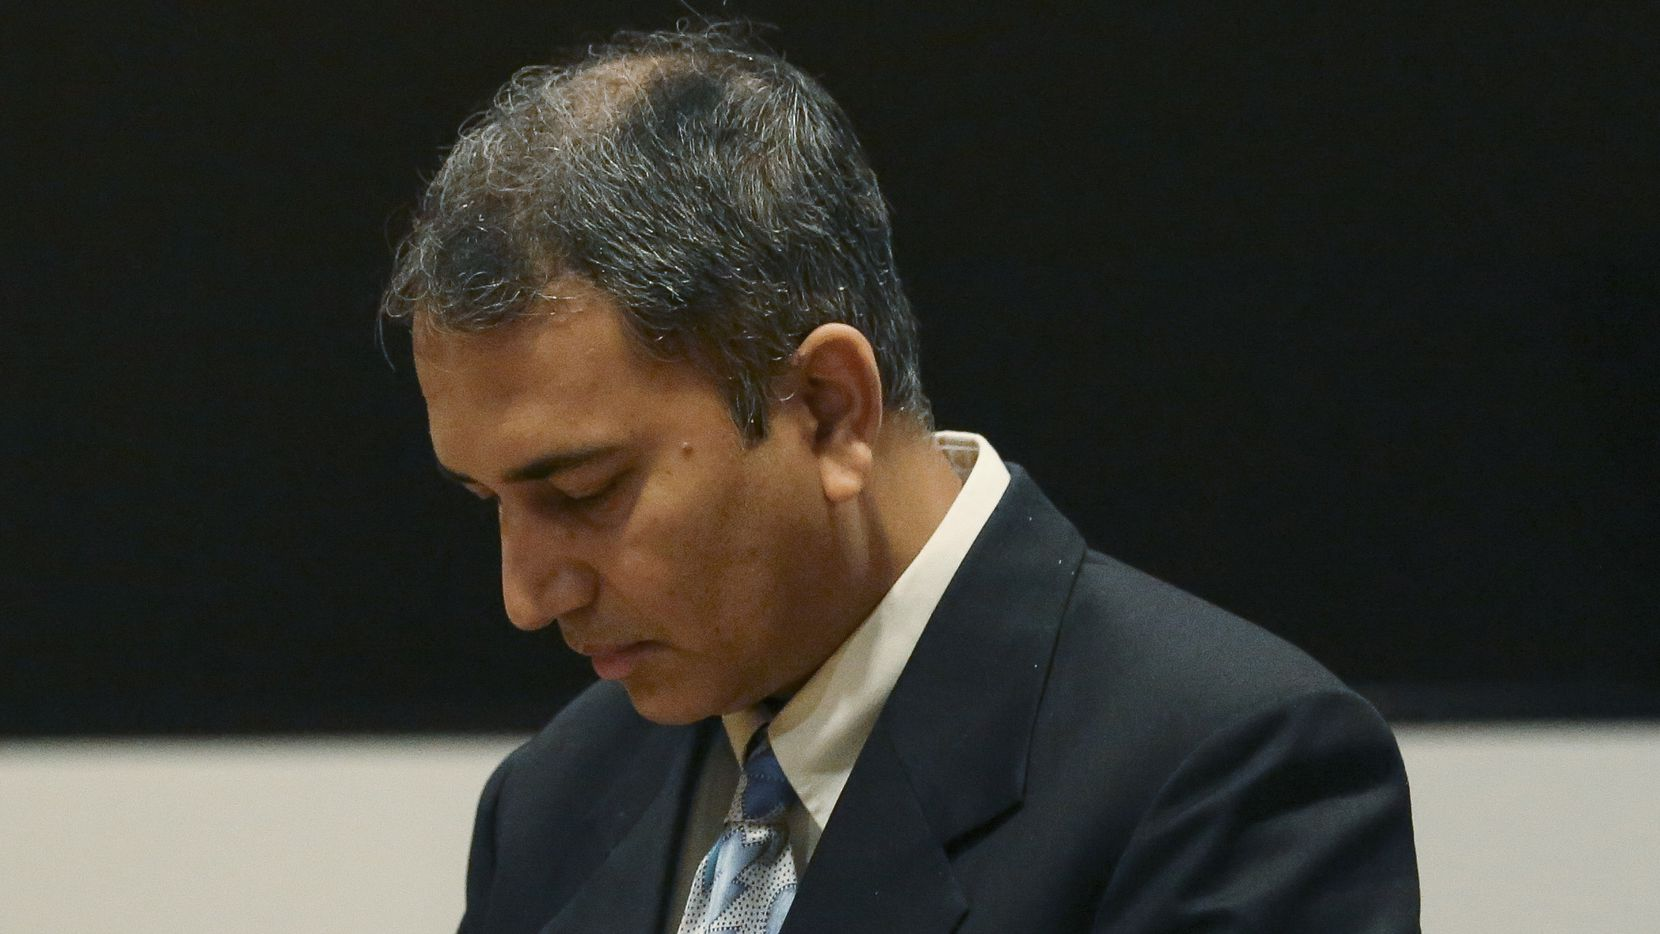 Dr. Shafeeq Sheikh awaits his sentencing at Harris County Family Law Center on Friday, Aug. 17, 2018, in Houston. The former Baylor doctor received 10 years probation for raping a patient in 2013 at Ben Taub Hospital. (Yi-Chin Lee/Houston Chronicle)